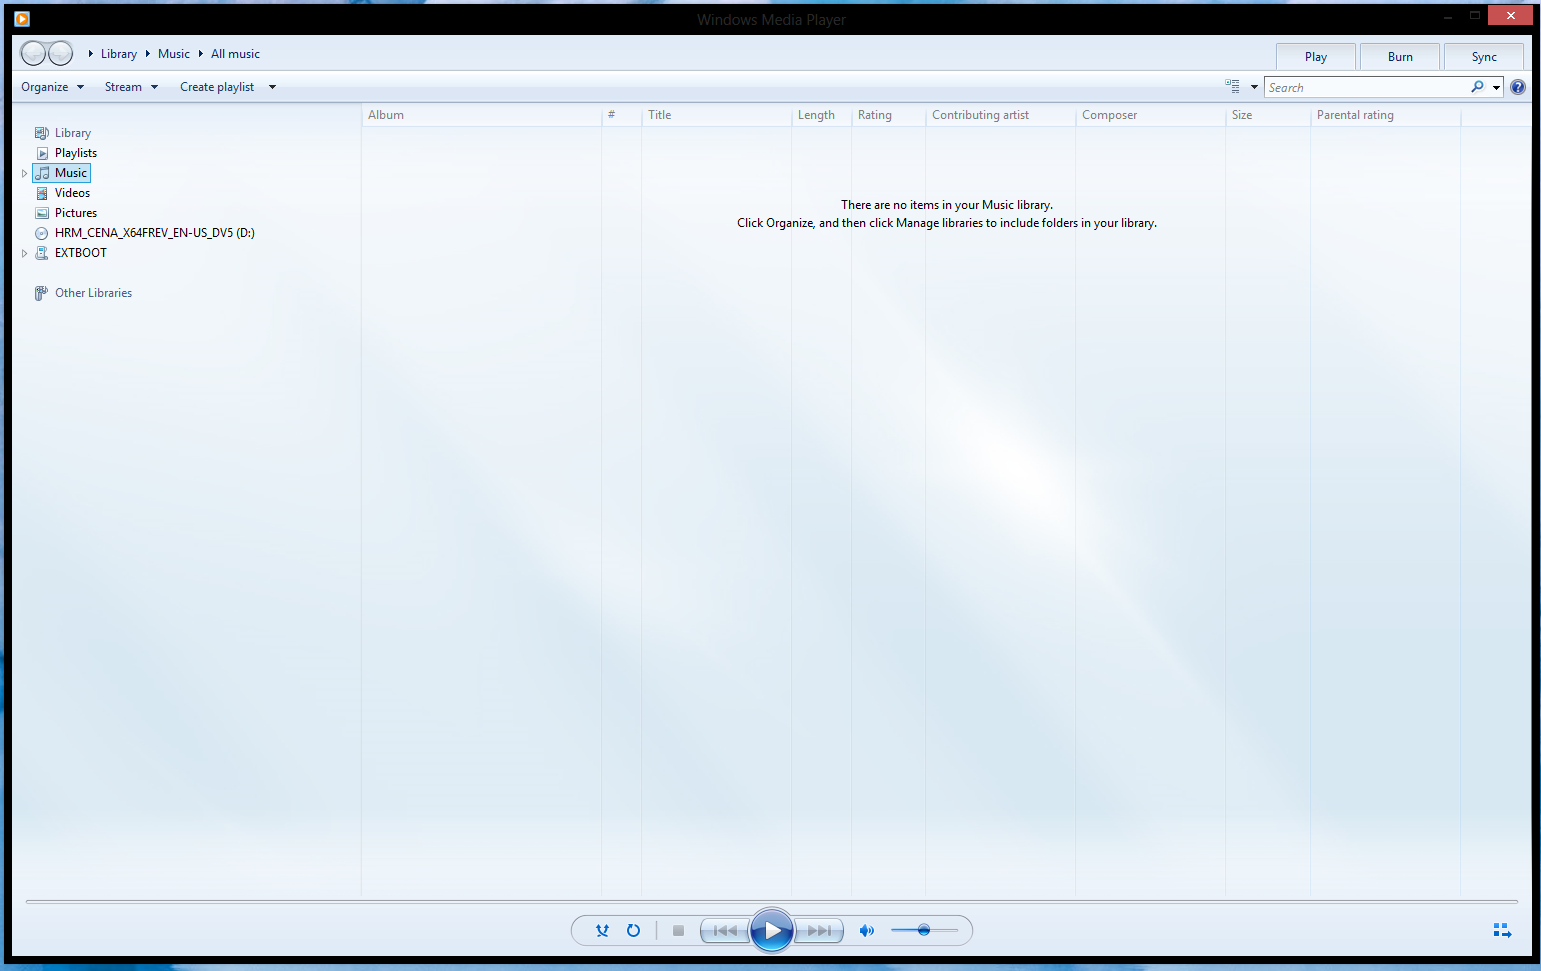 Windows media player ???